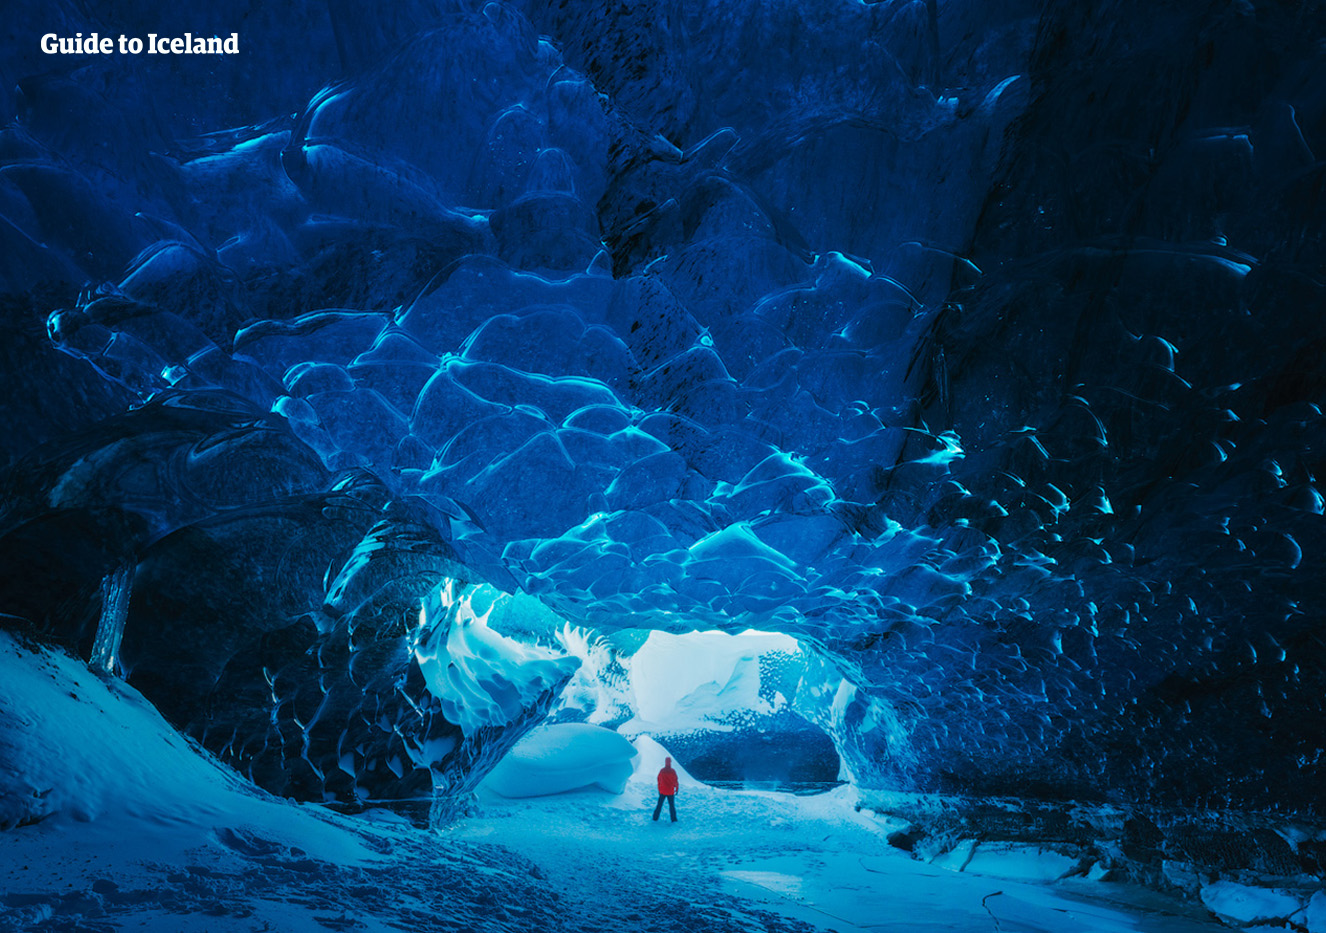 12 Day Northern Lights Winter Self Drive Tour of the Complete Ring Road with Snaefellsnes Peninsula - day 4